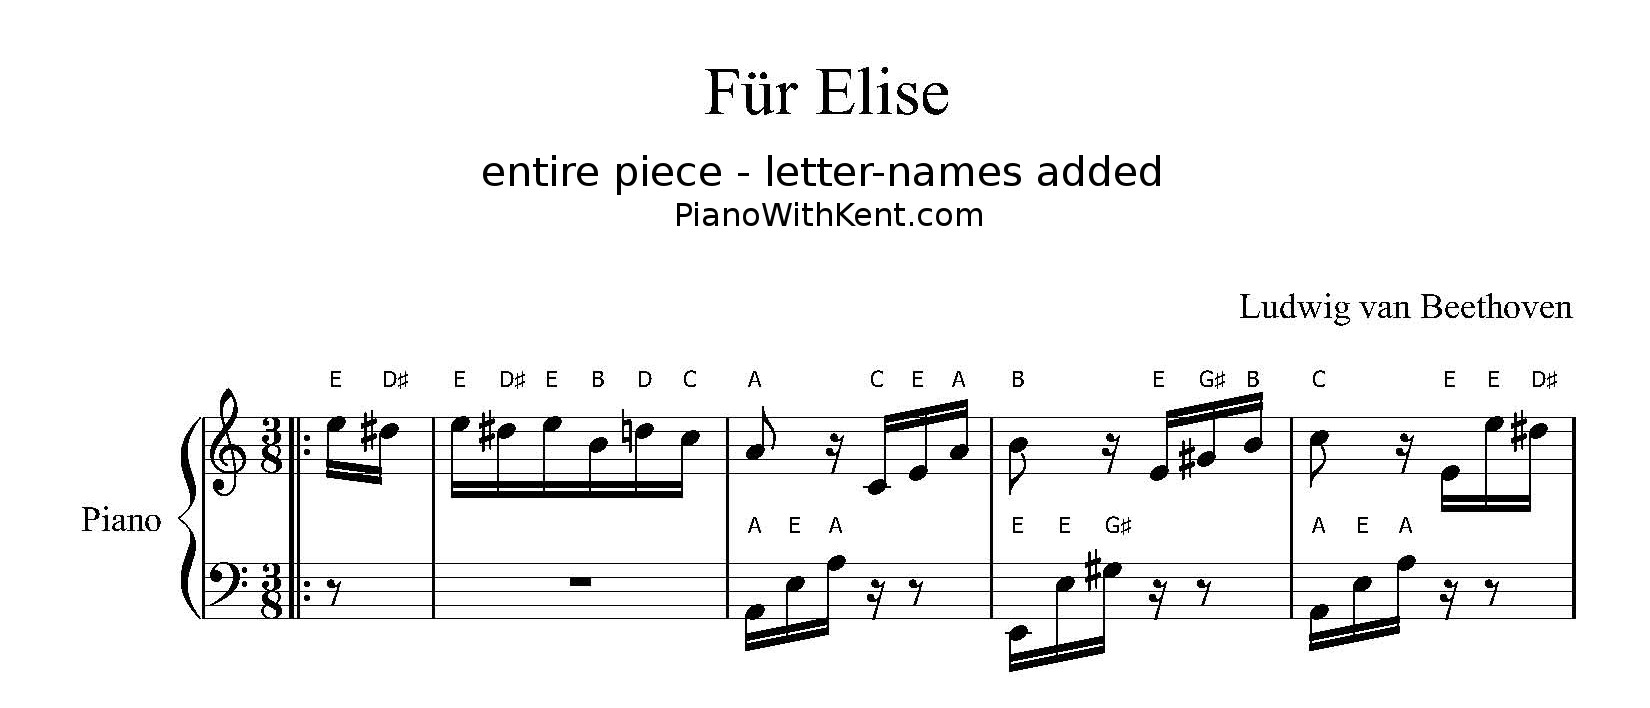 Fur elise piano sheet with letters